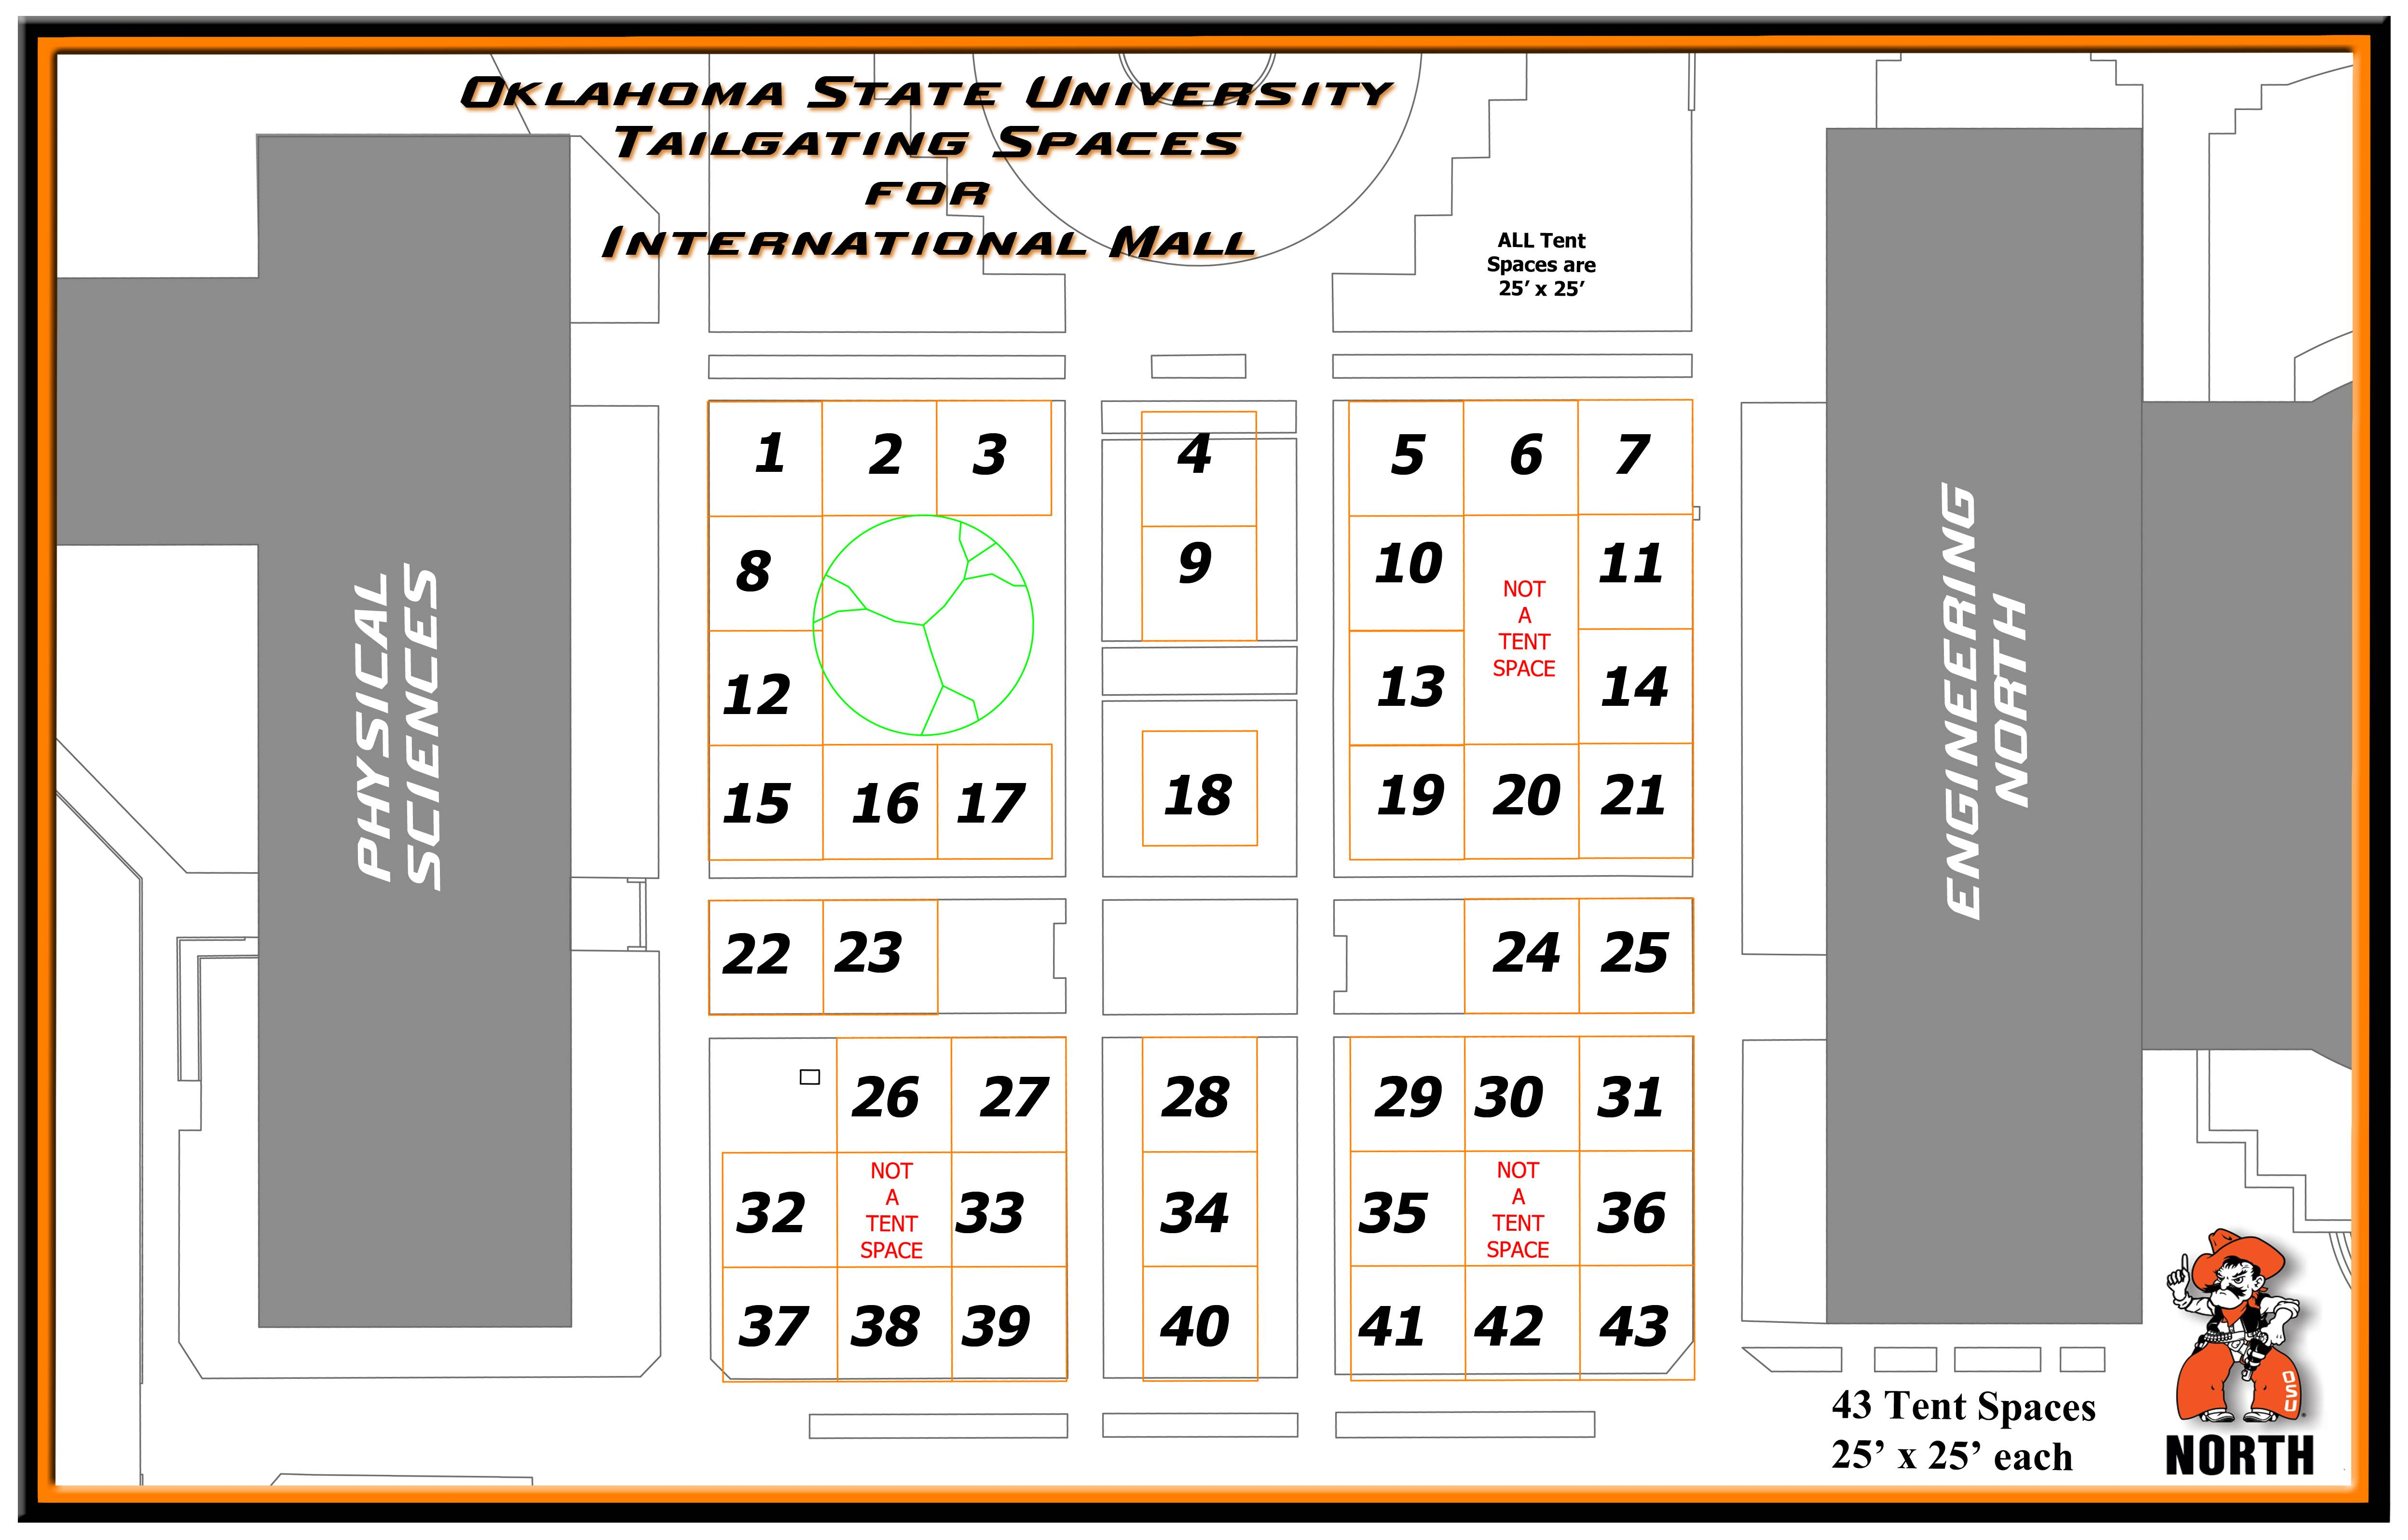 Tailgating Spaces Map for International Mall